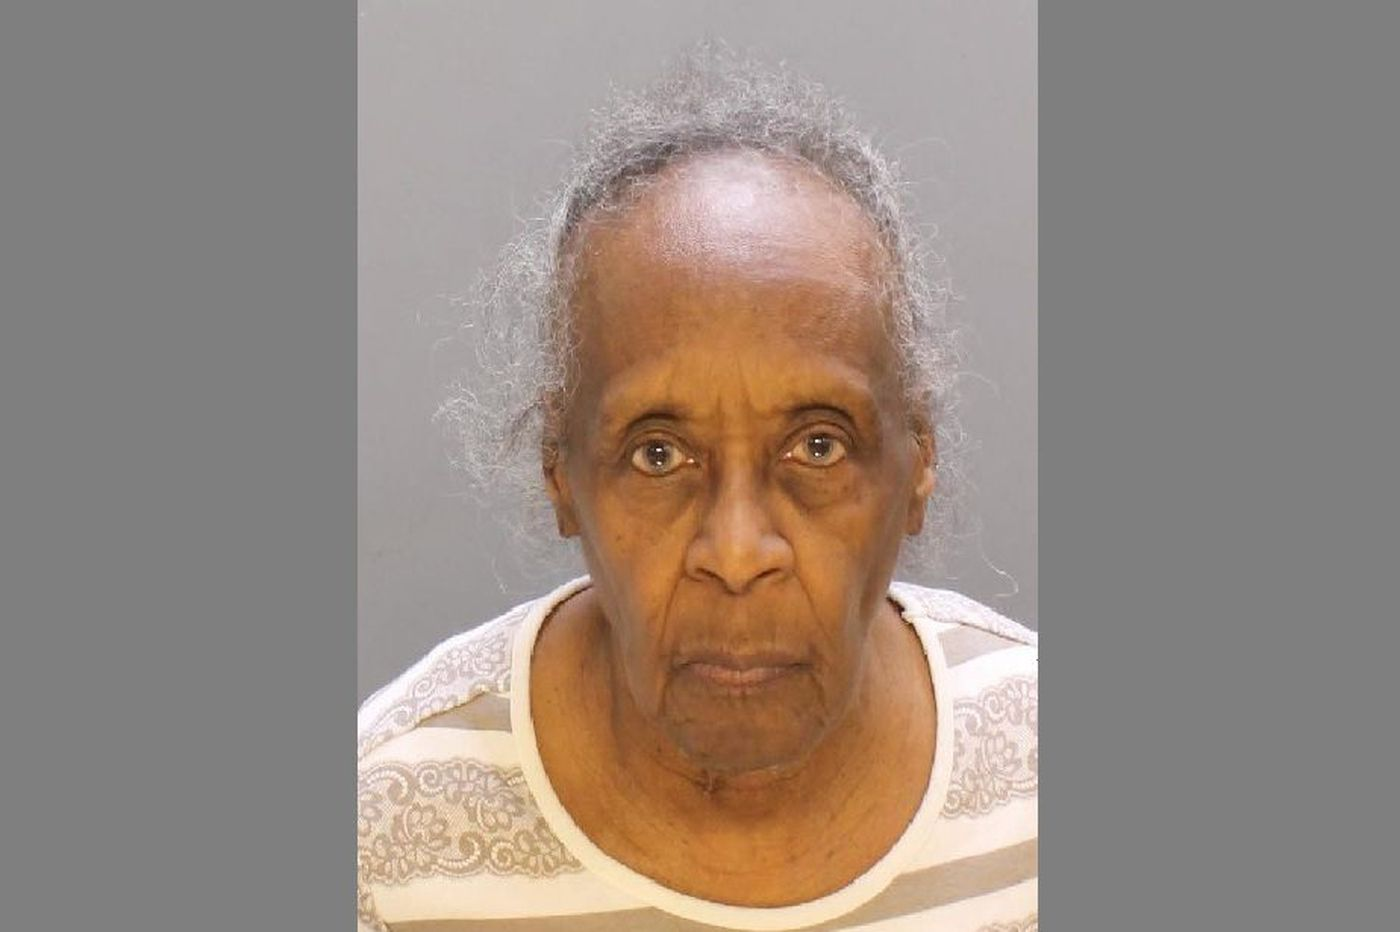 Philly woman, 86, charged with bank robbery